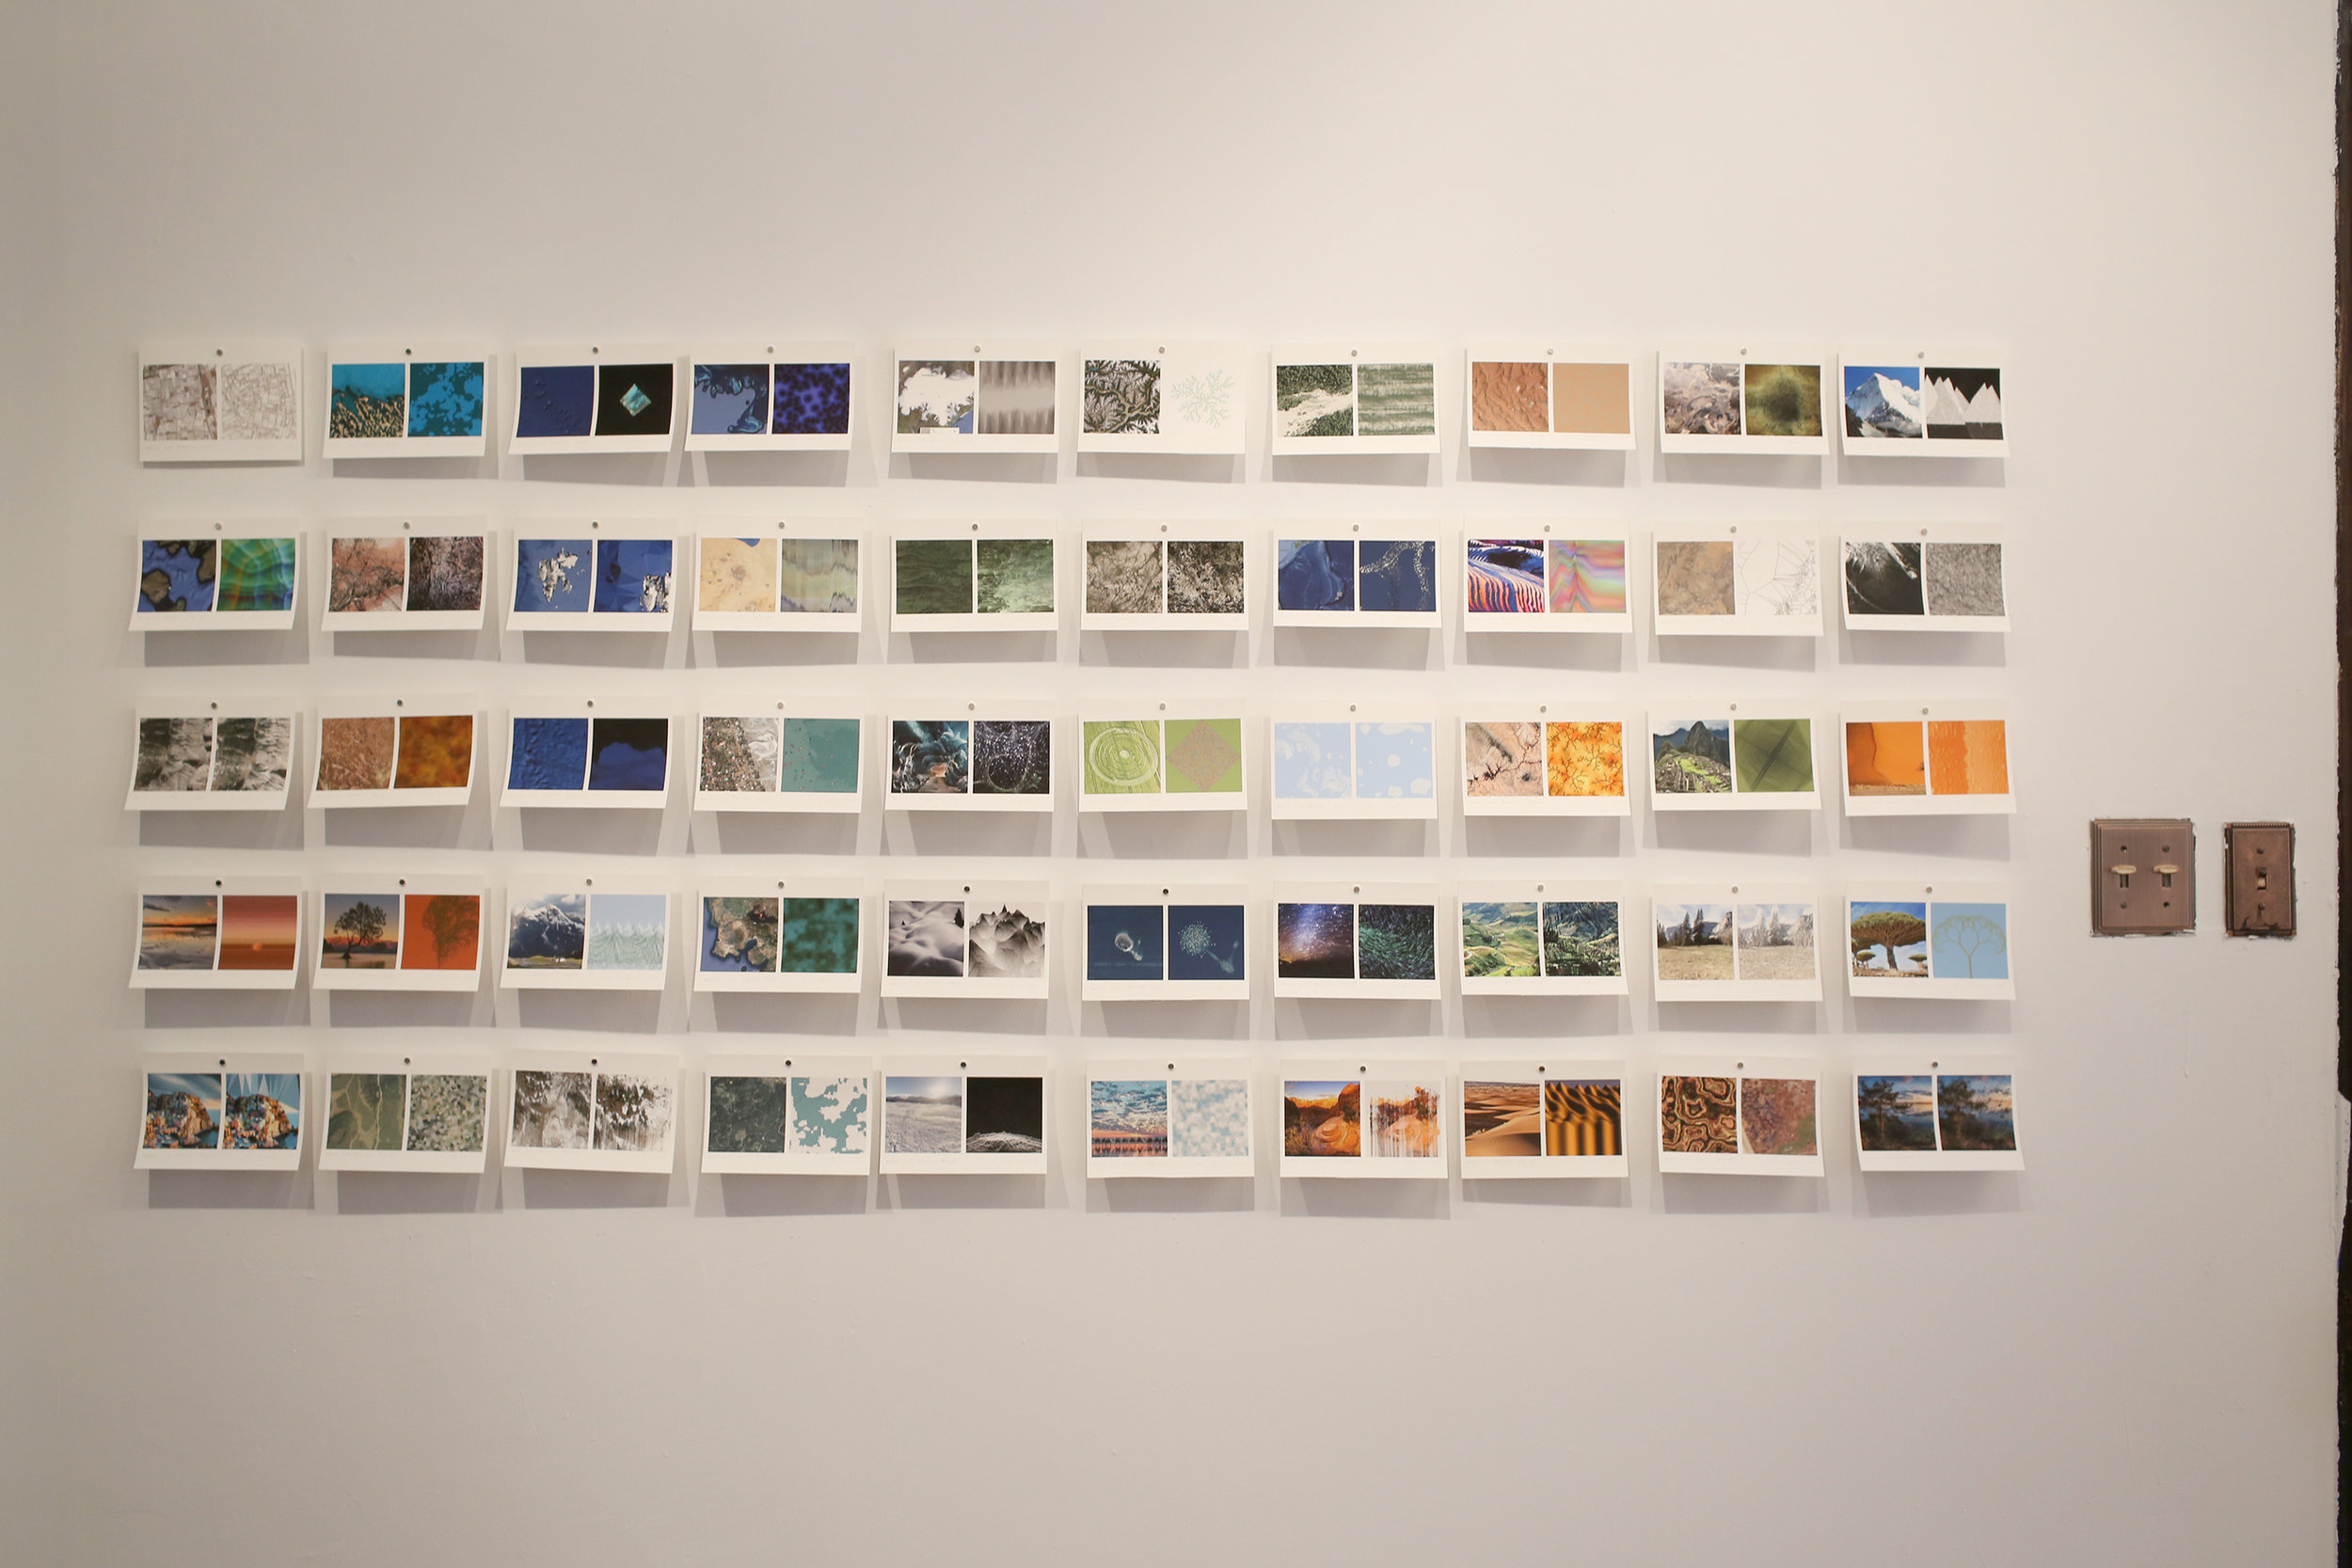 Installation View  of  Day 1 - 50, Prints on wall at Fou Gallery